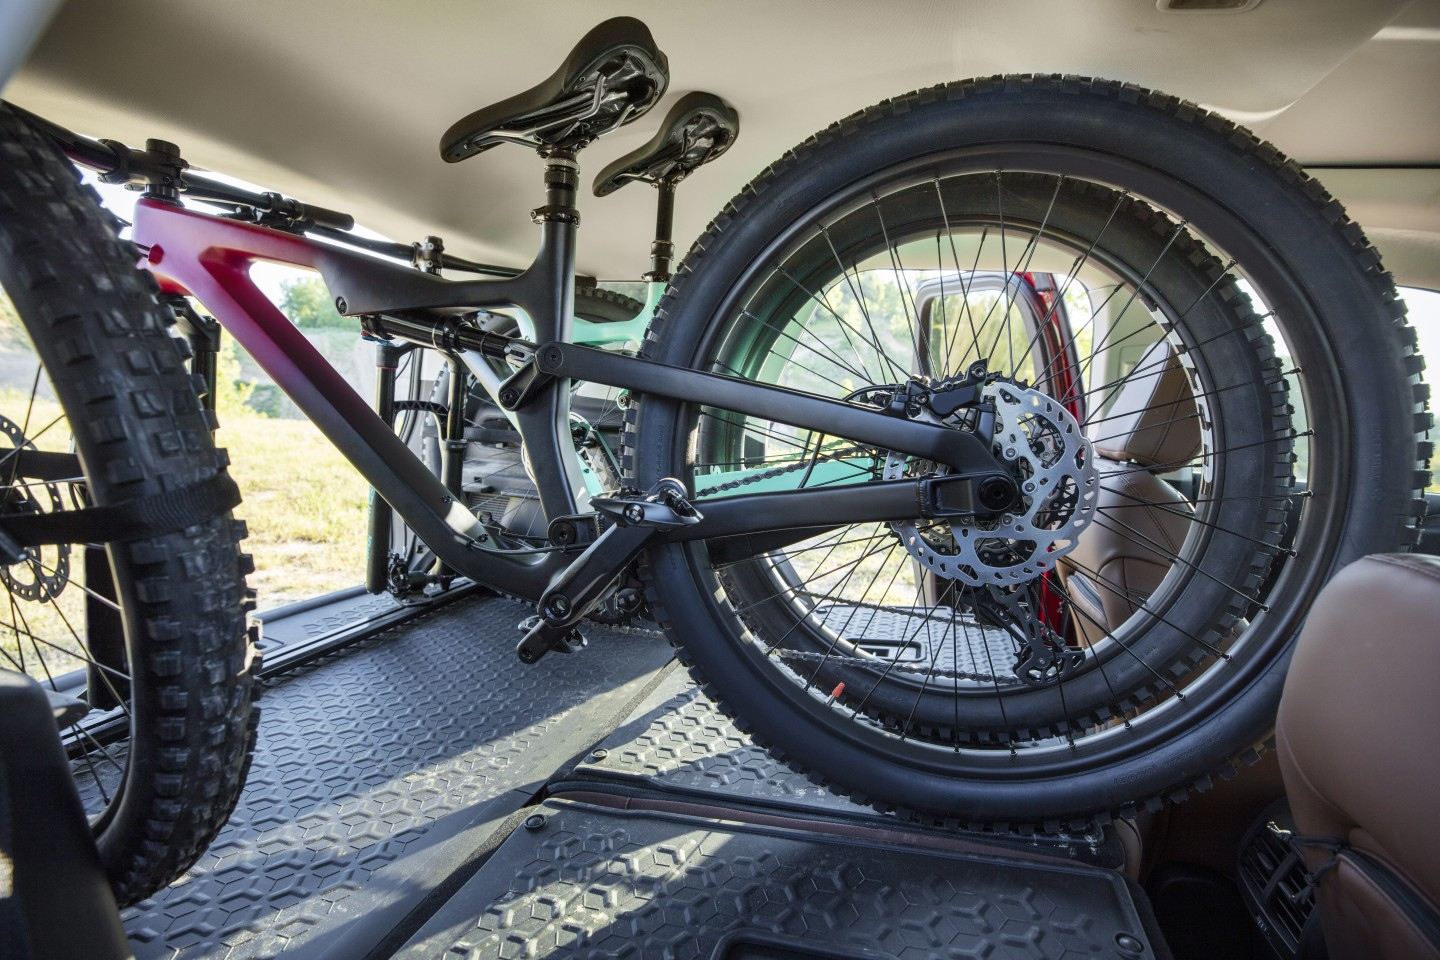 The cargo area in the Ford Bronco Sport can stow two mountain bikes inside the vehicle